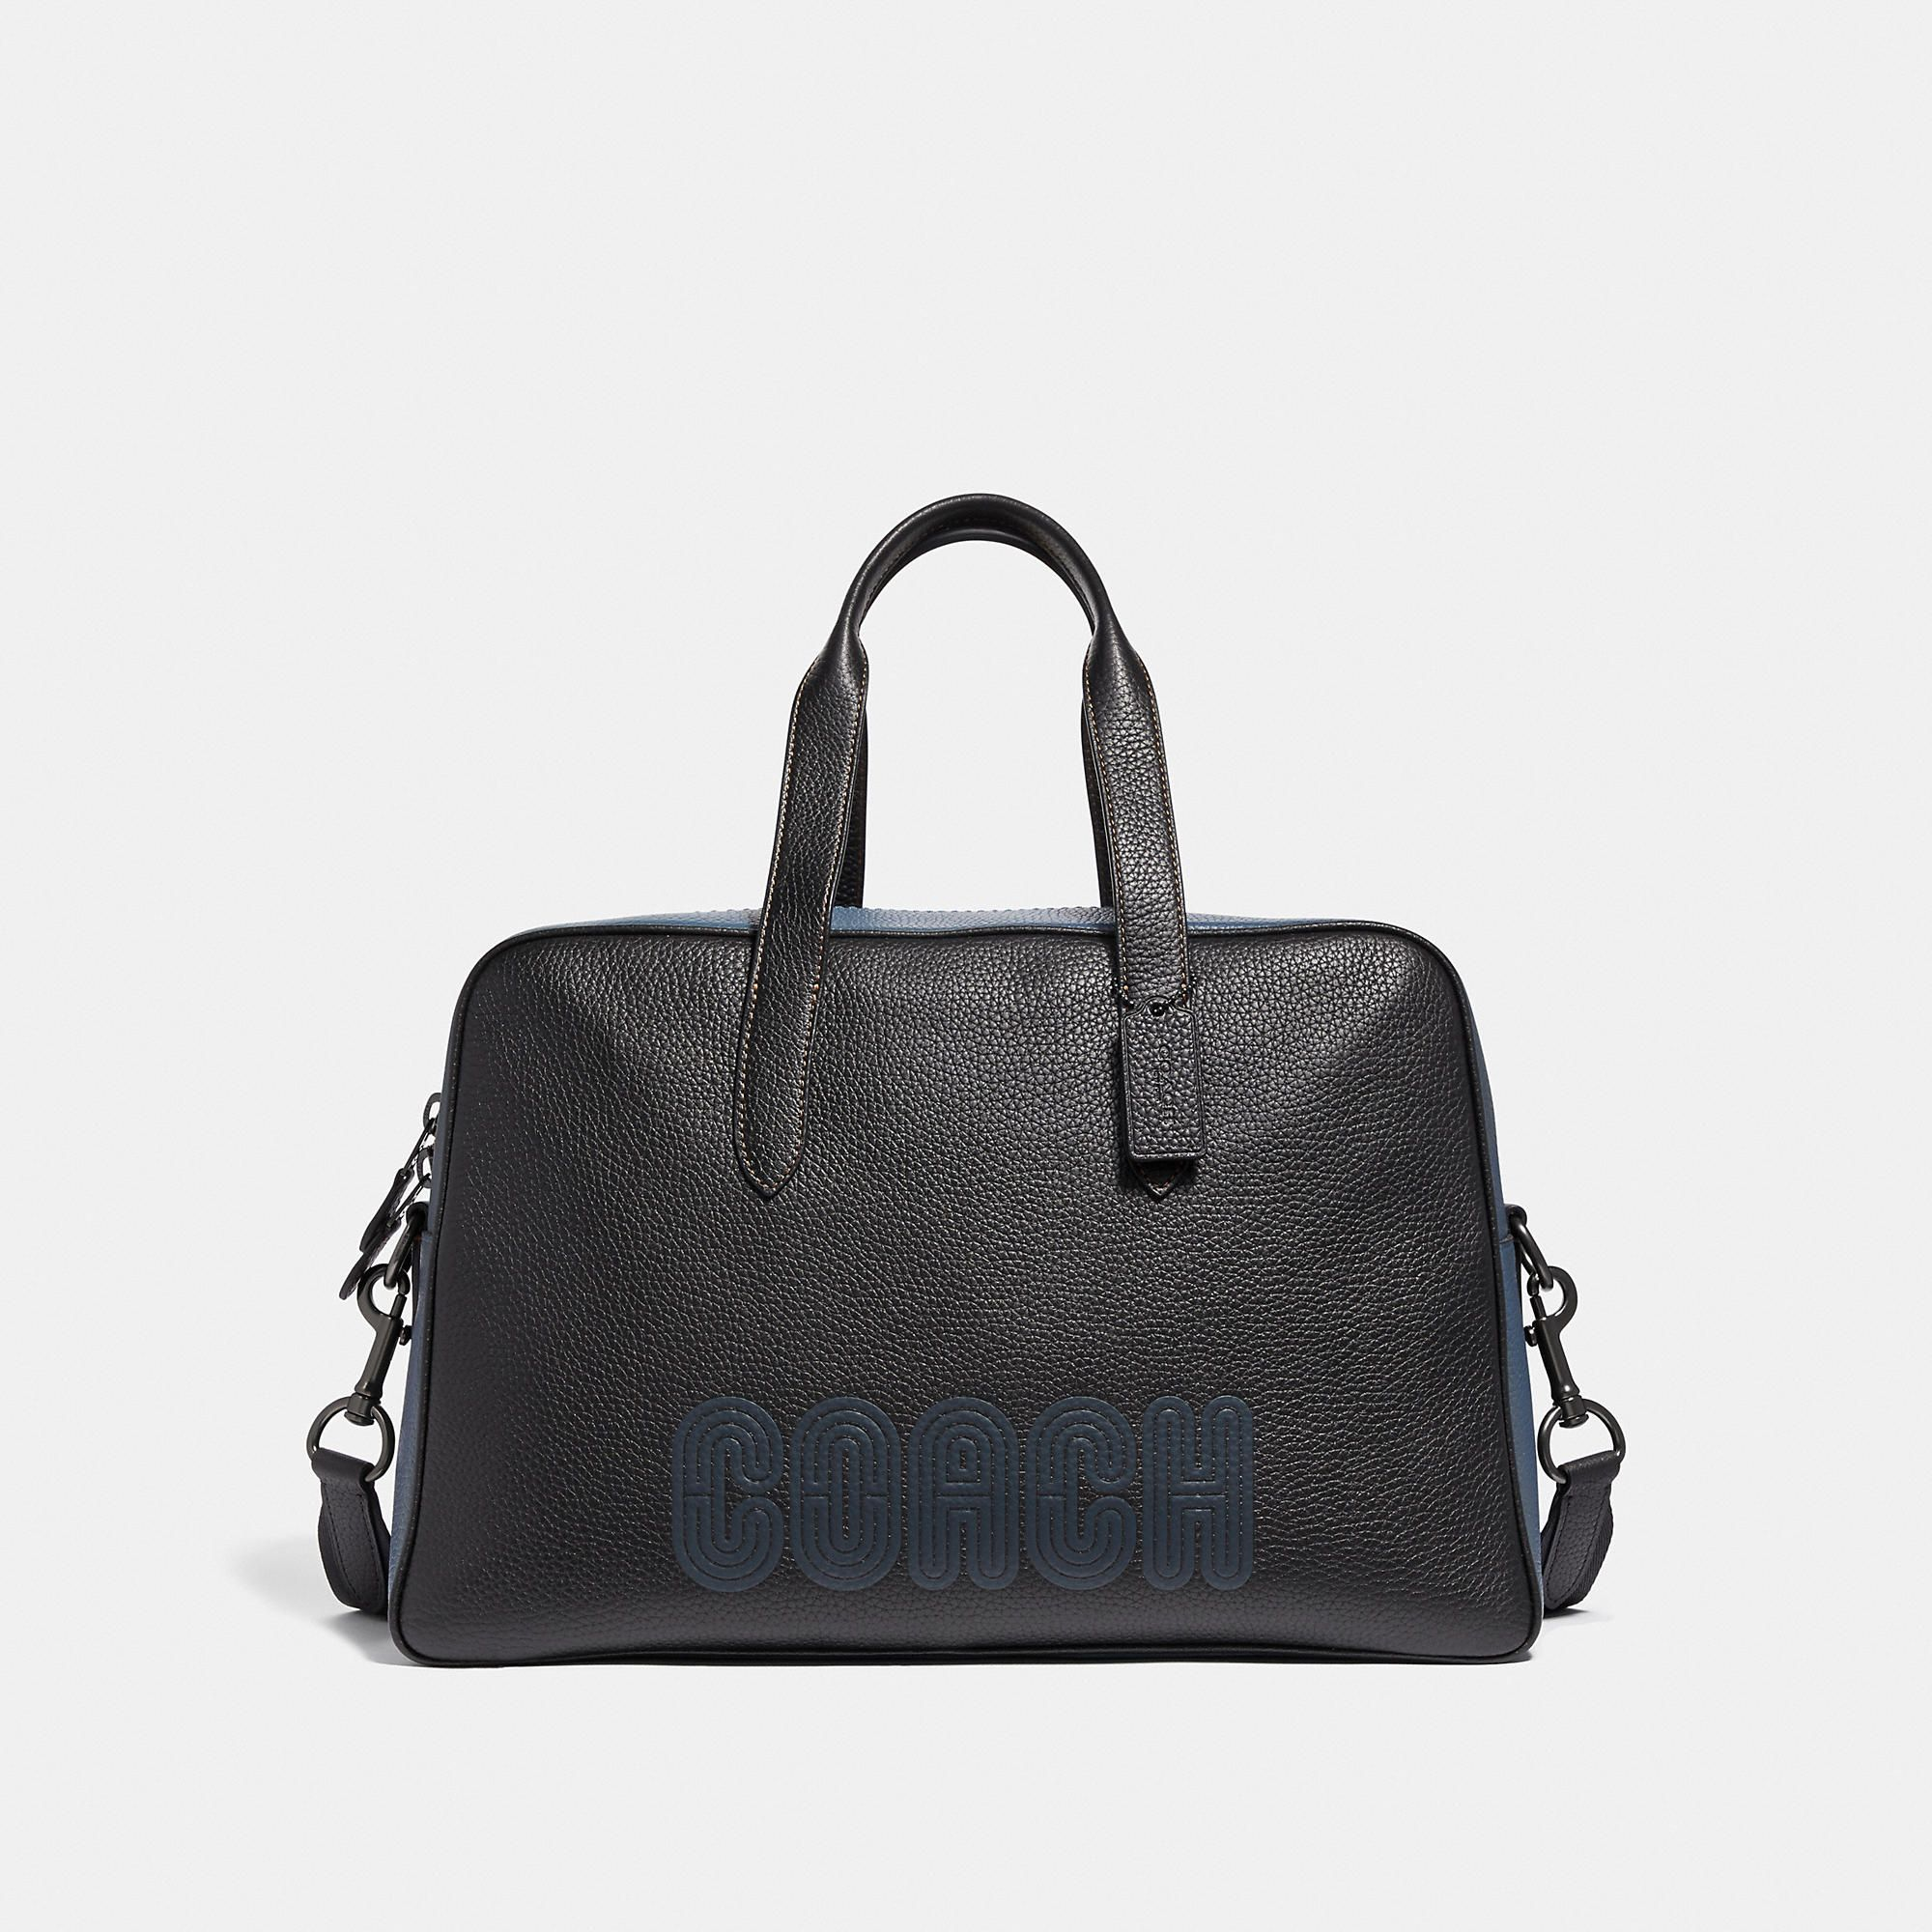 Coach Metropolitan Soft Carryall With Patch In Black Black Copper Finish Modesens Carryall Coach Leather Bags